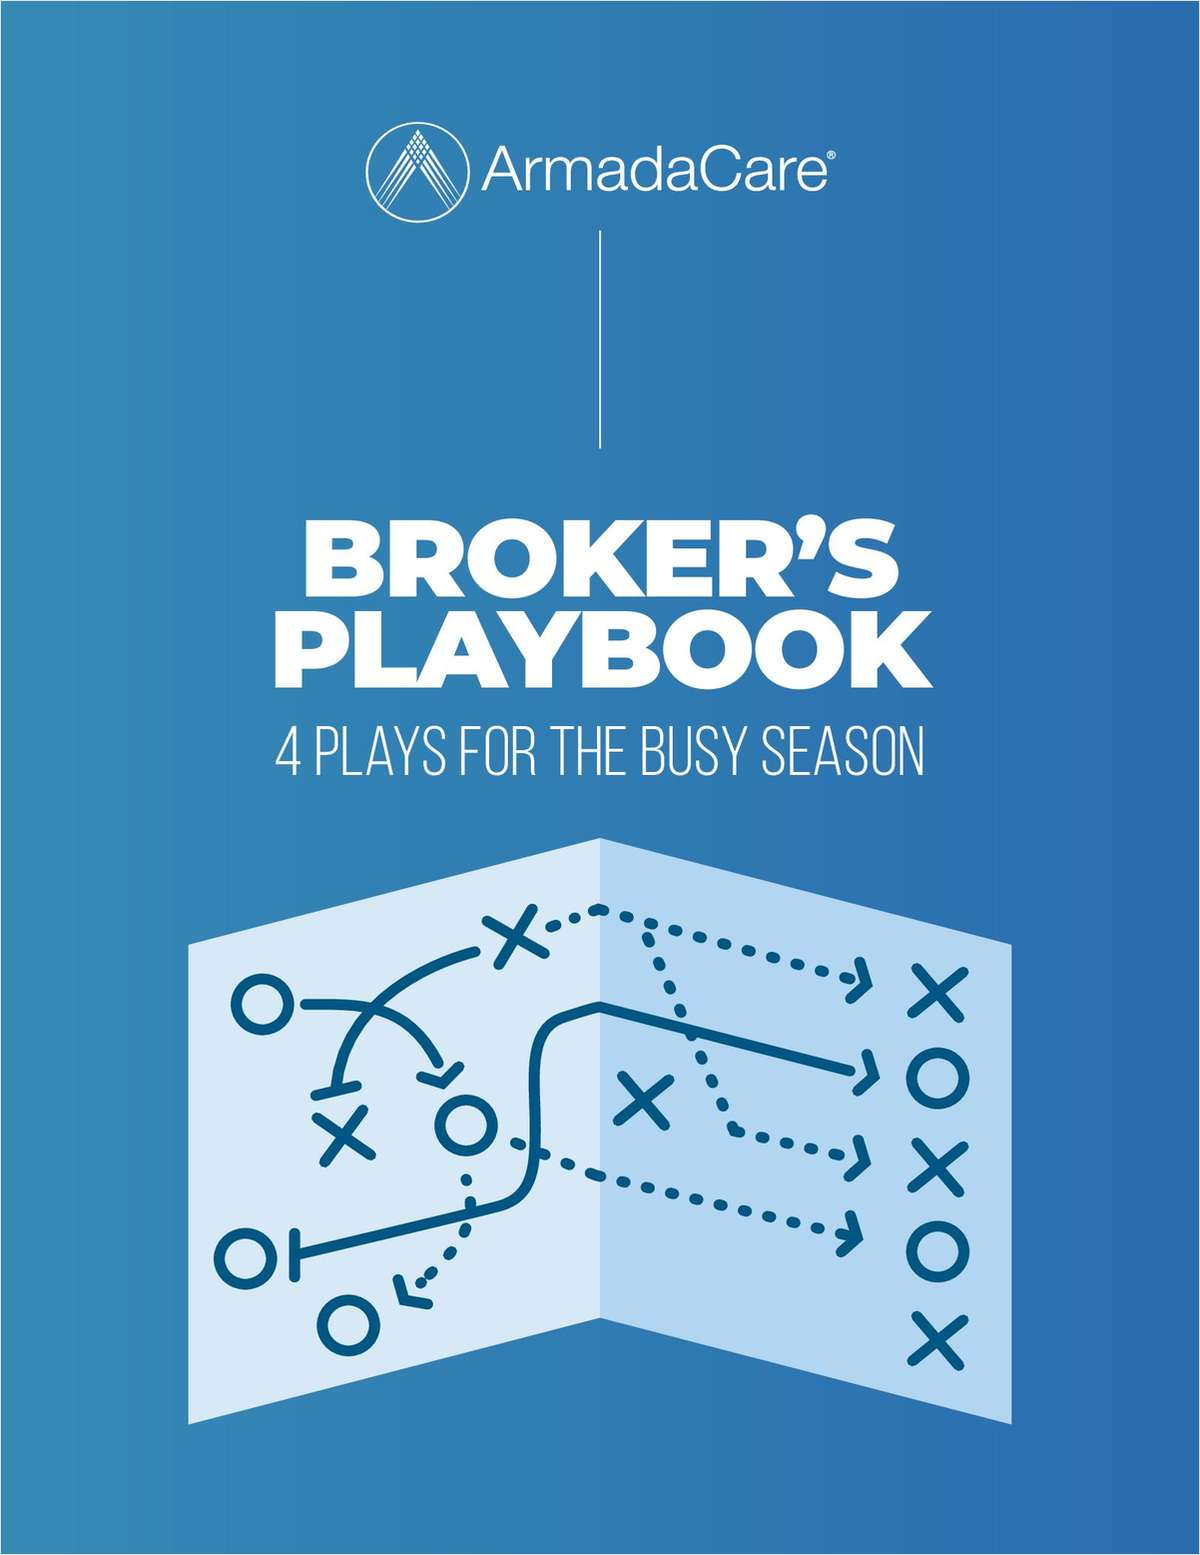 Broker's Playbook: 4 Plays for the Busy Season